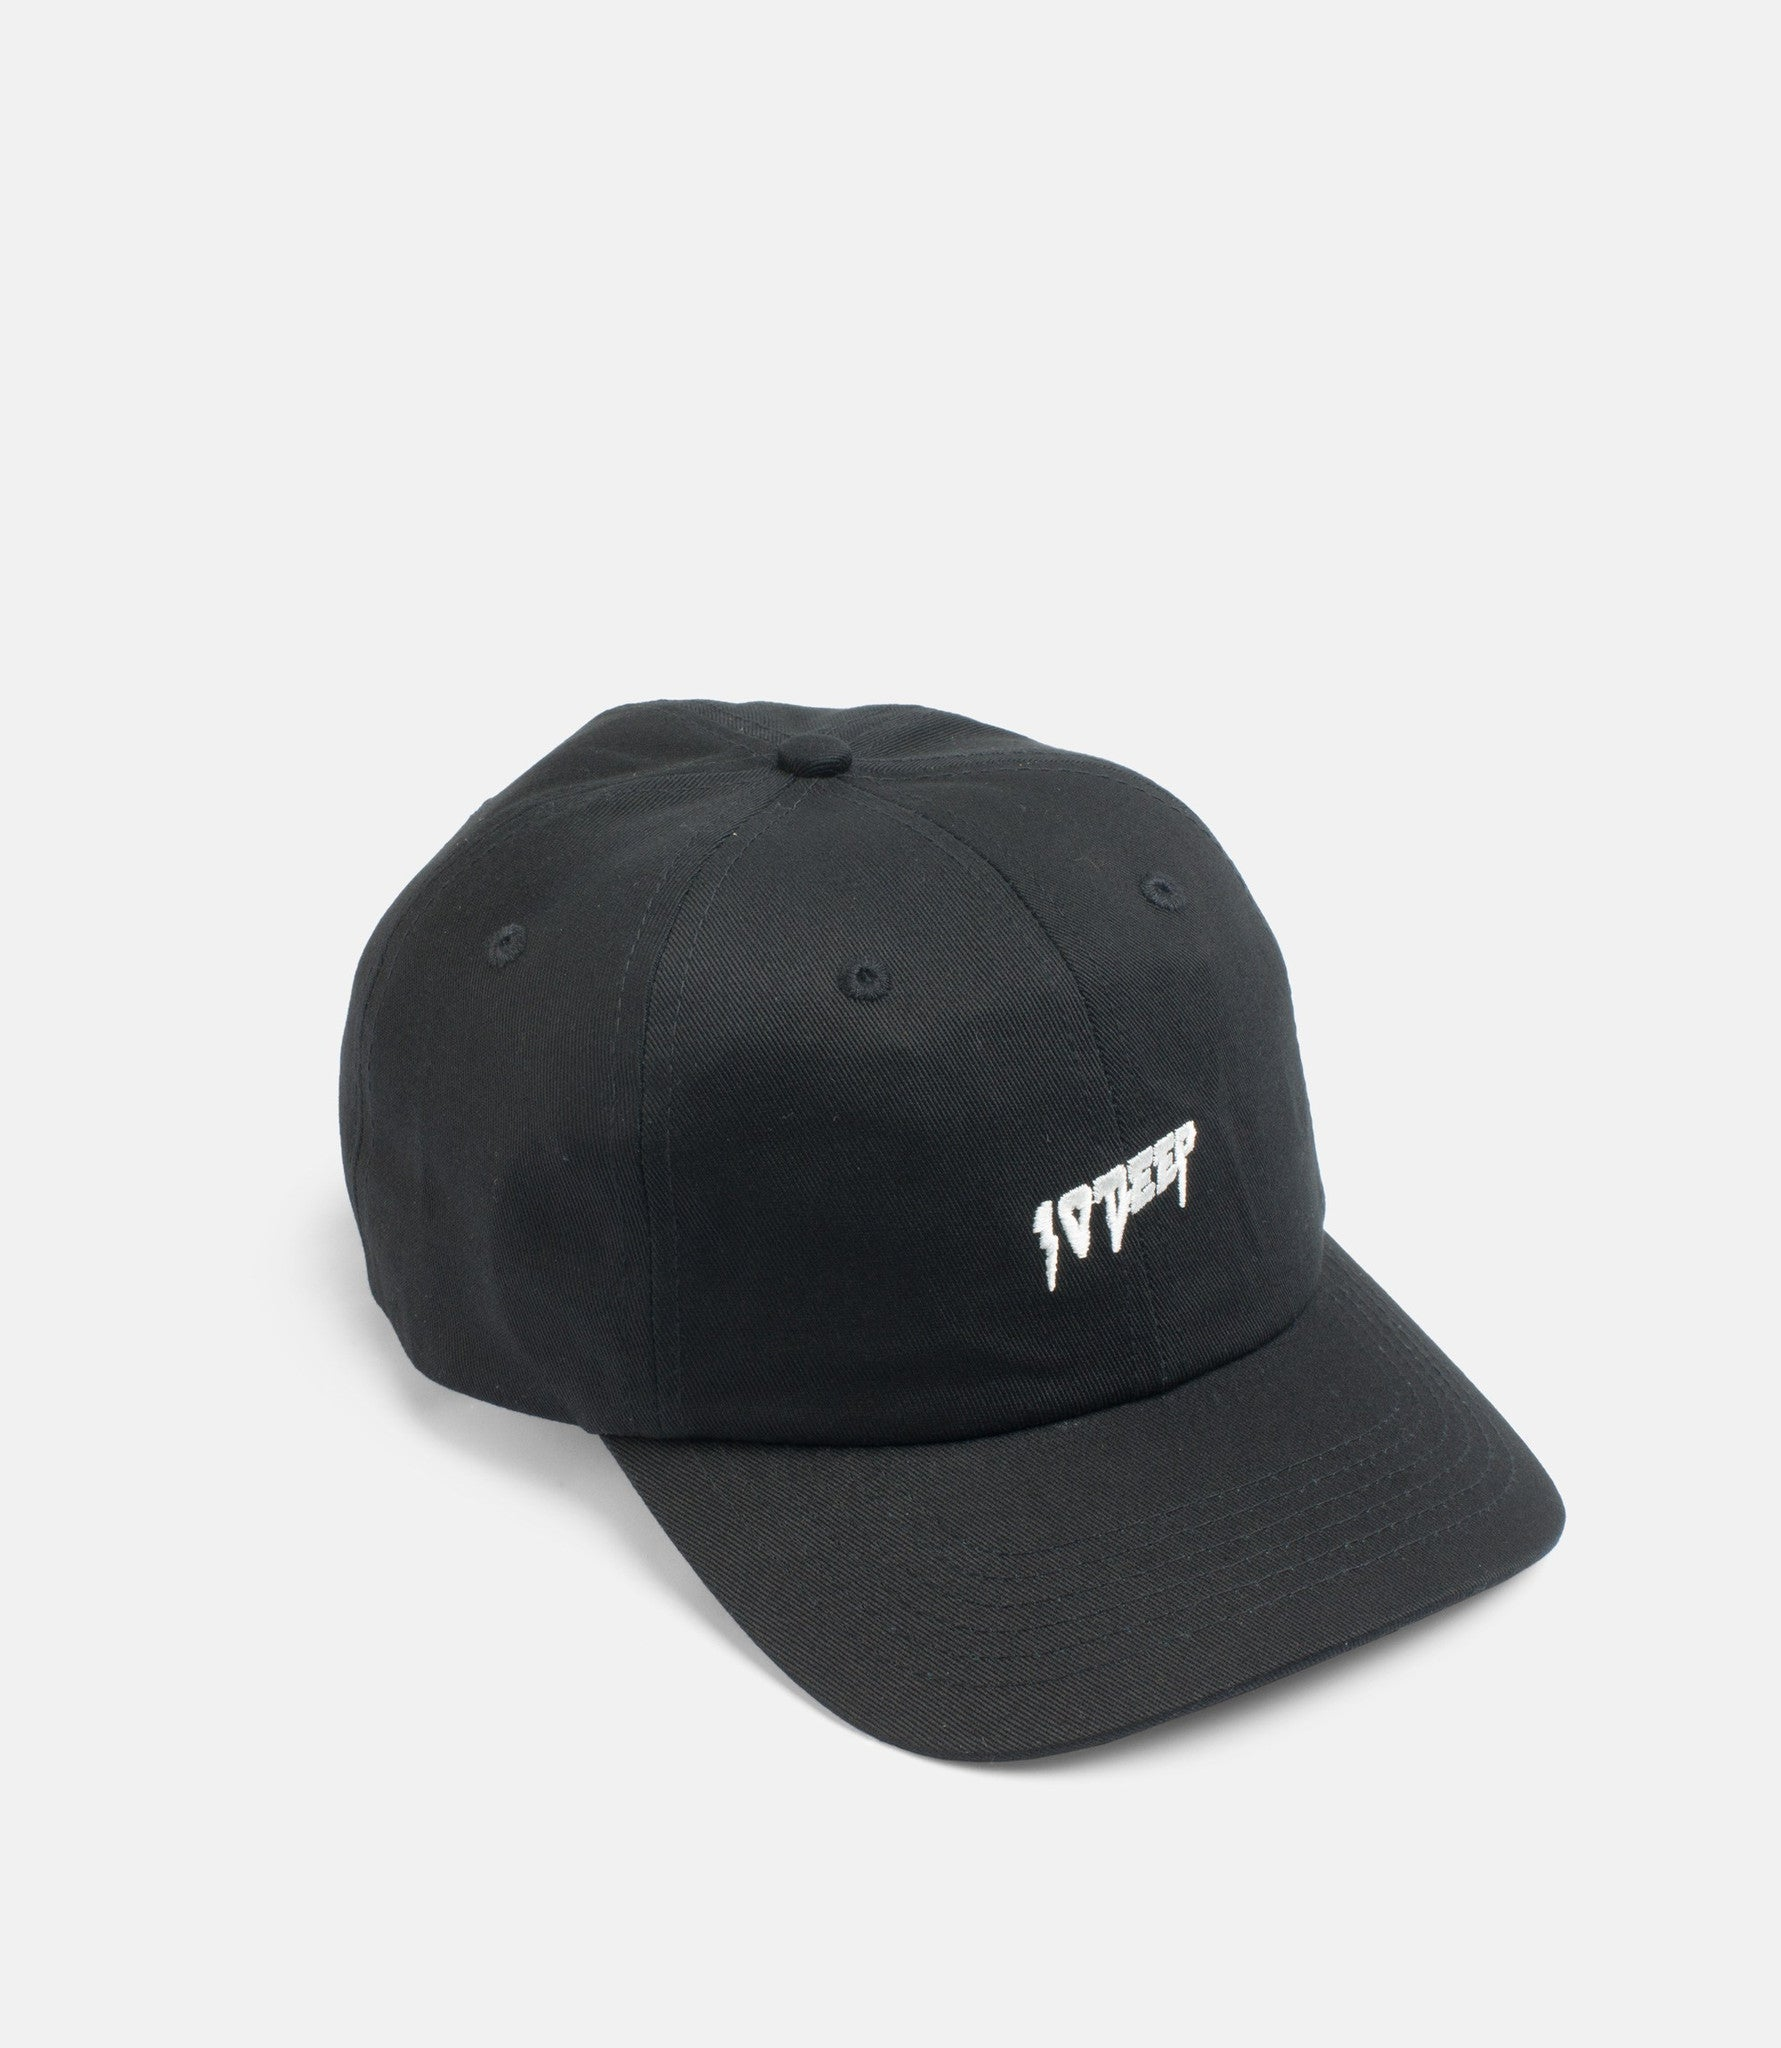 10Deep - Sound & Fury Strapback, Black - The Giant Peach - 2